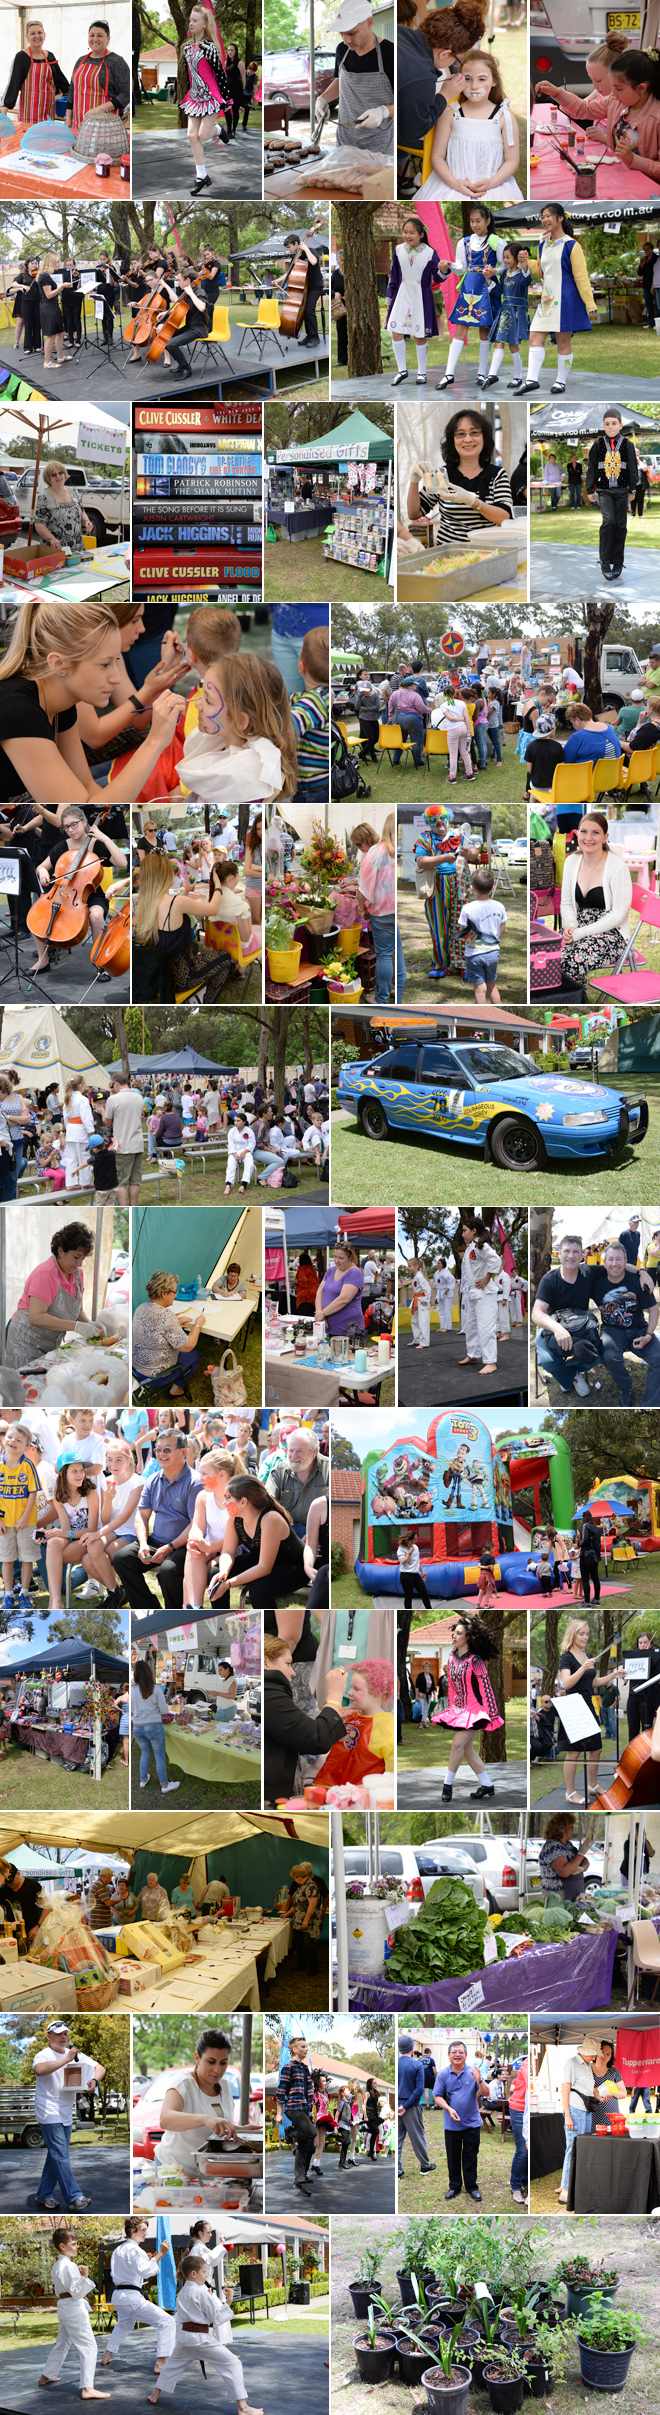 The 2015 Parish Fete